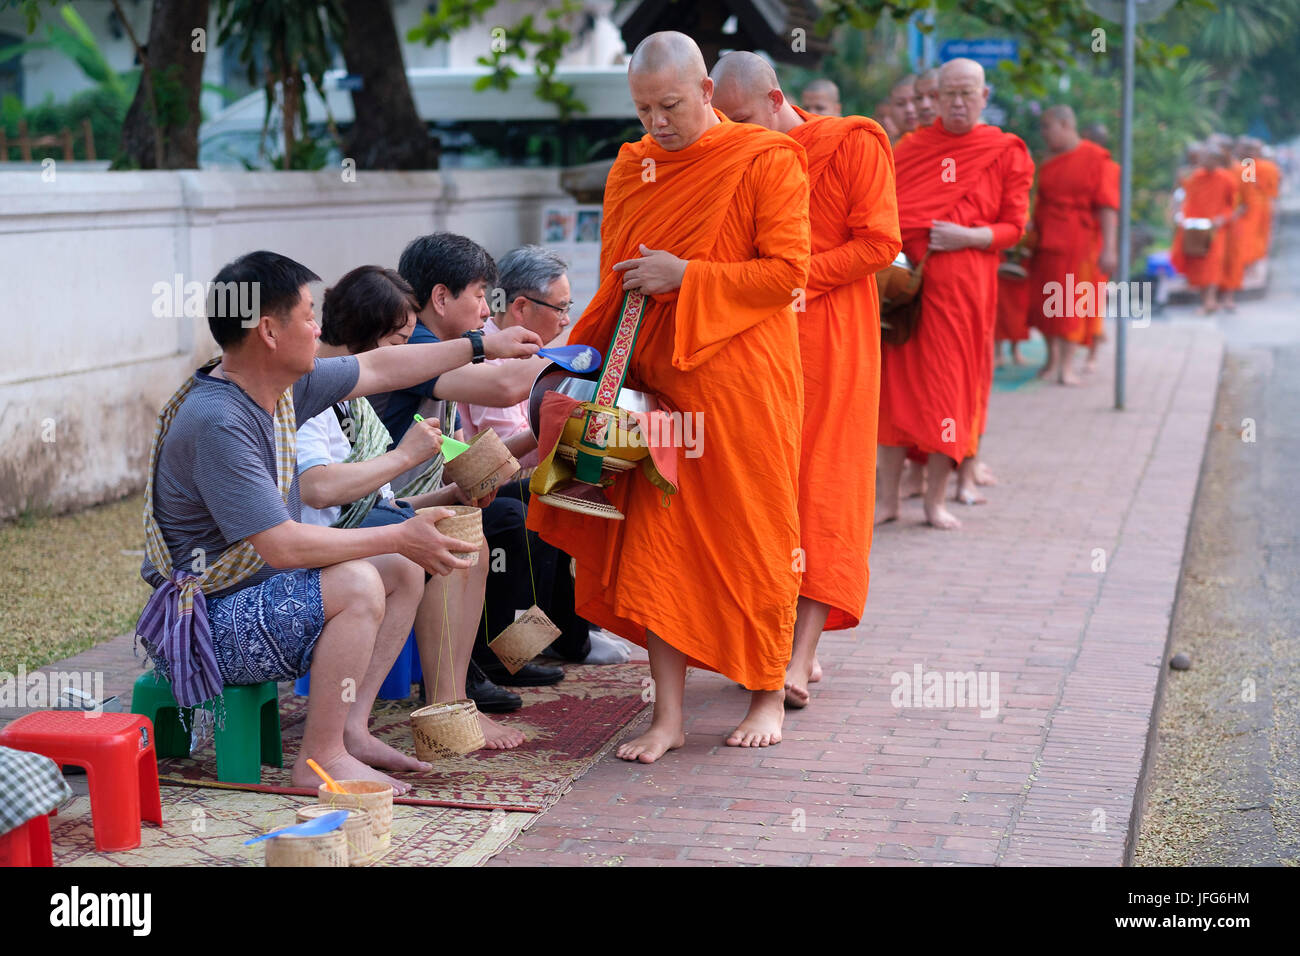 Procession of buddhist monks wearing orange robes at dawn to collect gifts on the streets of Luang Prabang, Laos, - Stock Image